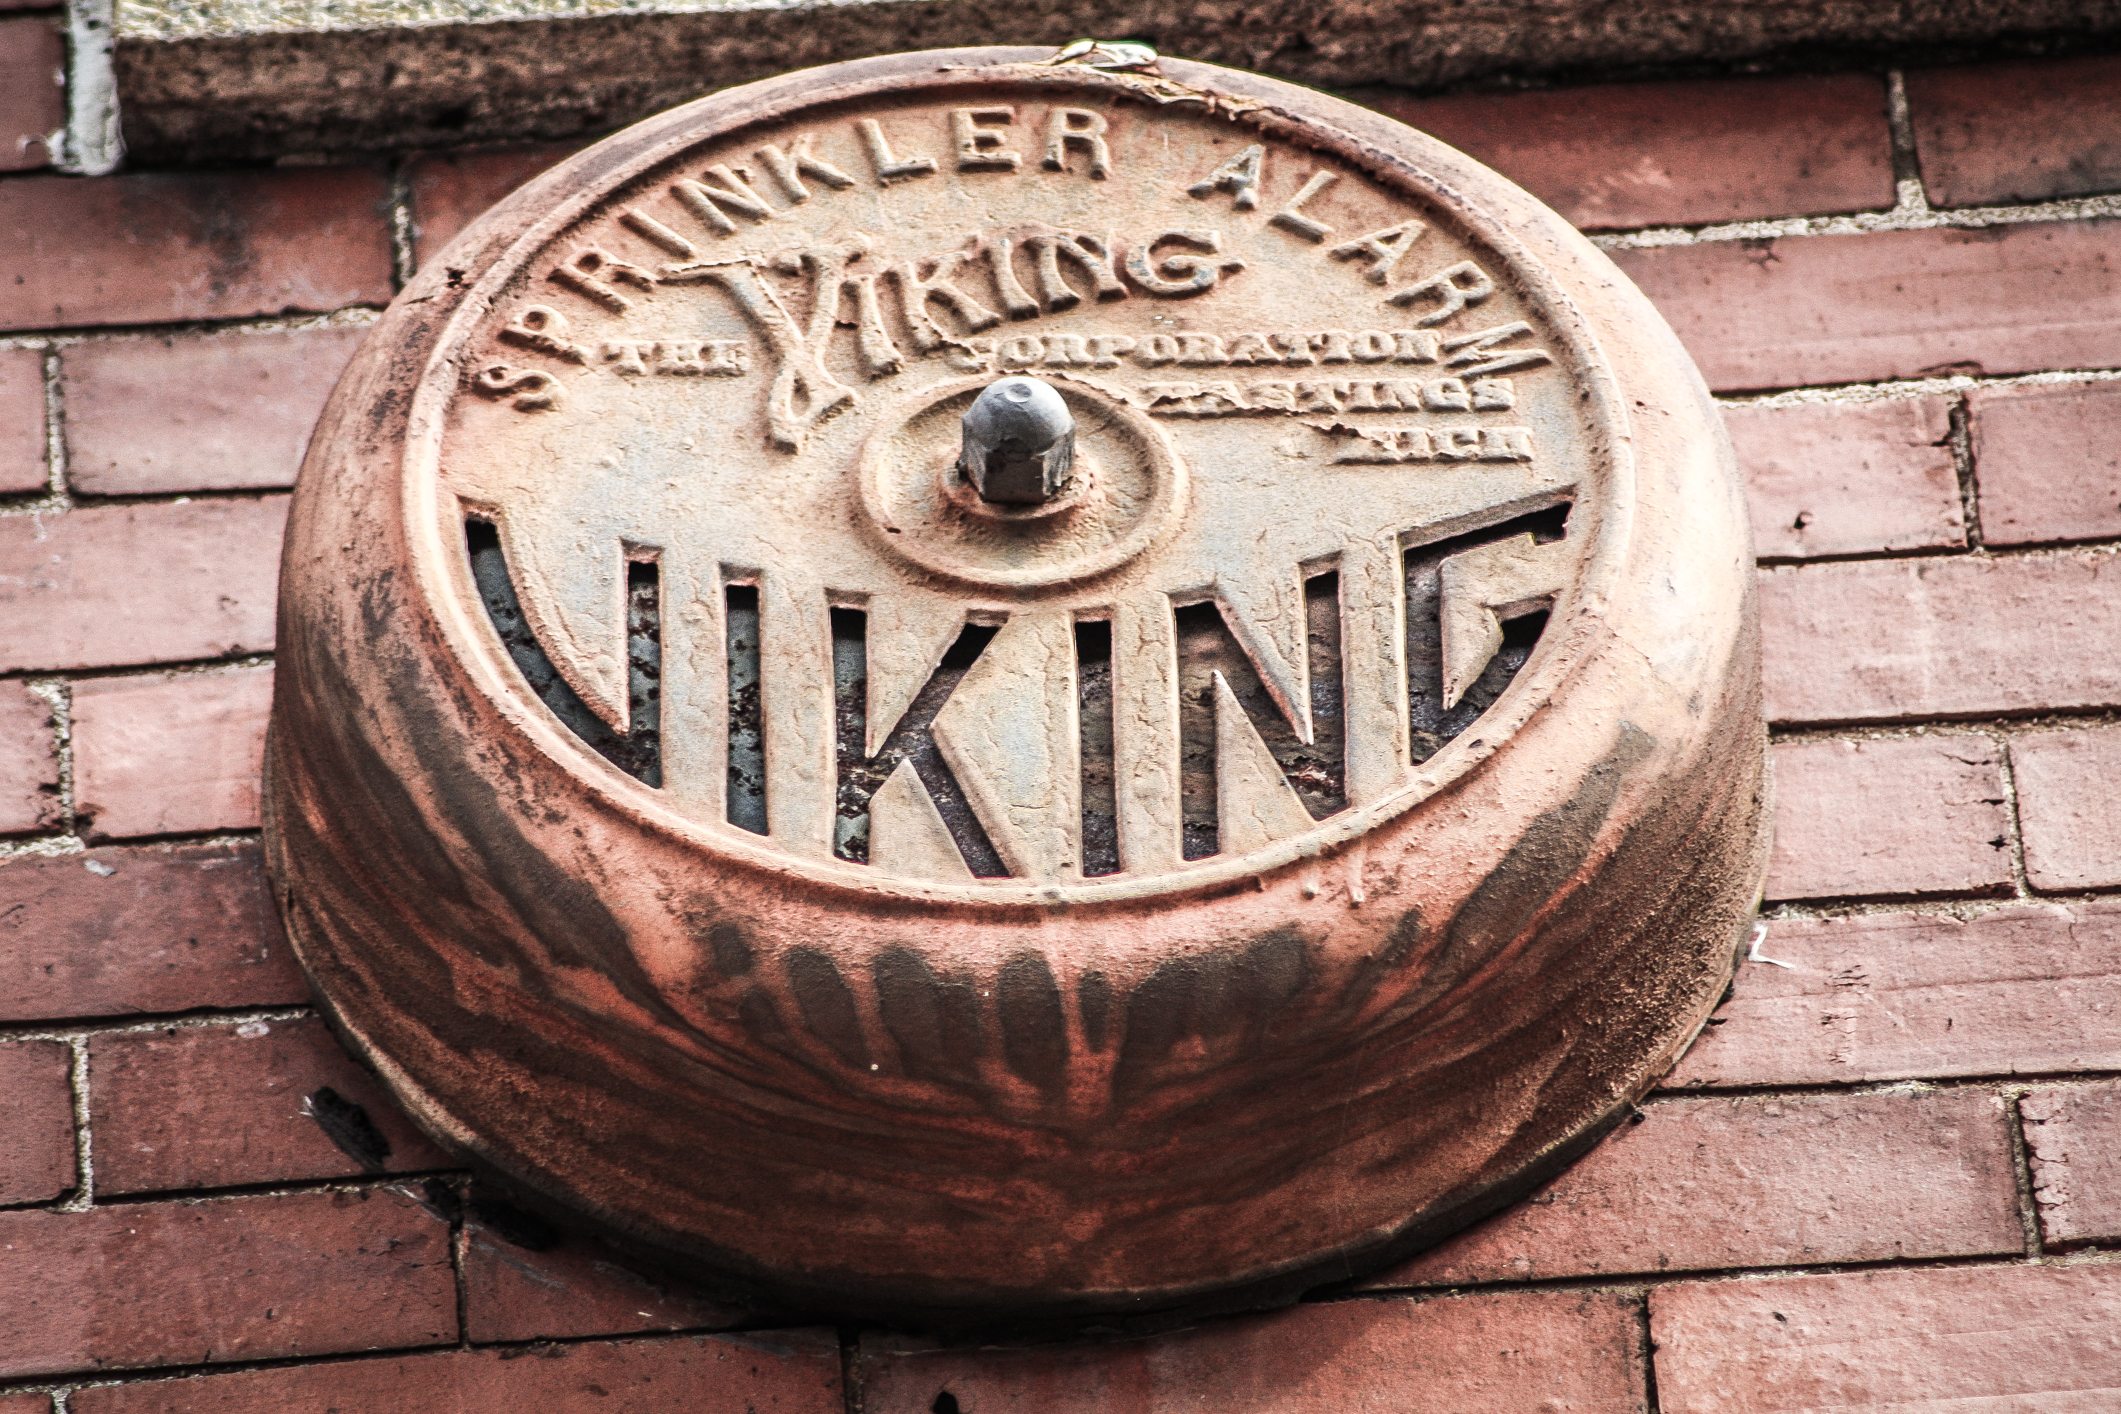 an old Viking Sprinkler Alarm is still attached to the side of a building in downtown Macon, GA NotSoSAHM